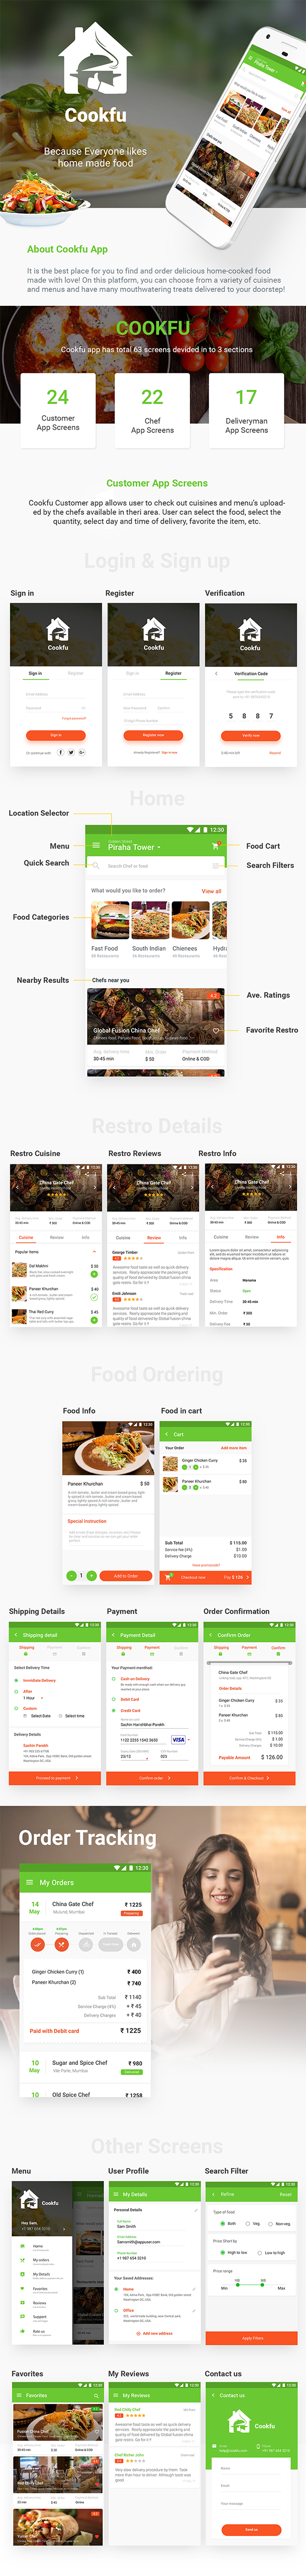 Free Download Food Ordering & Delivery Android App + iOS App